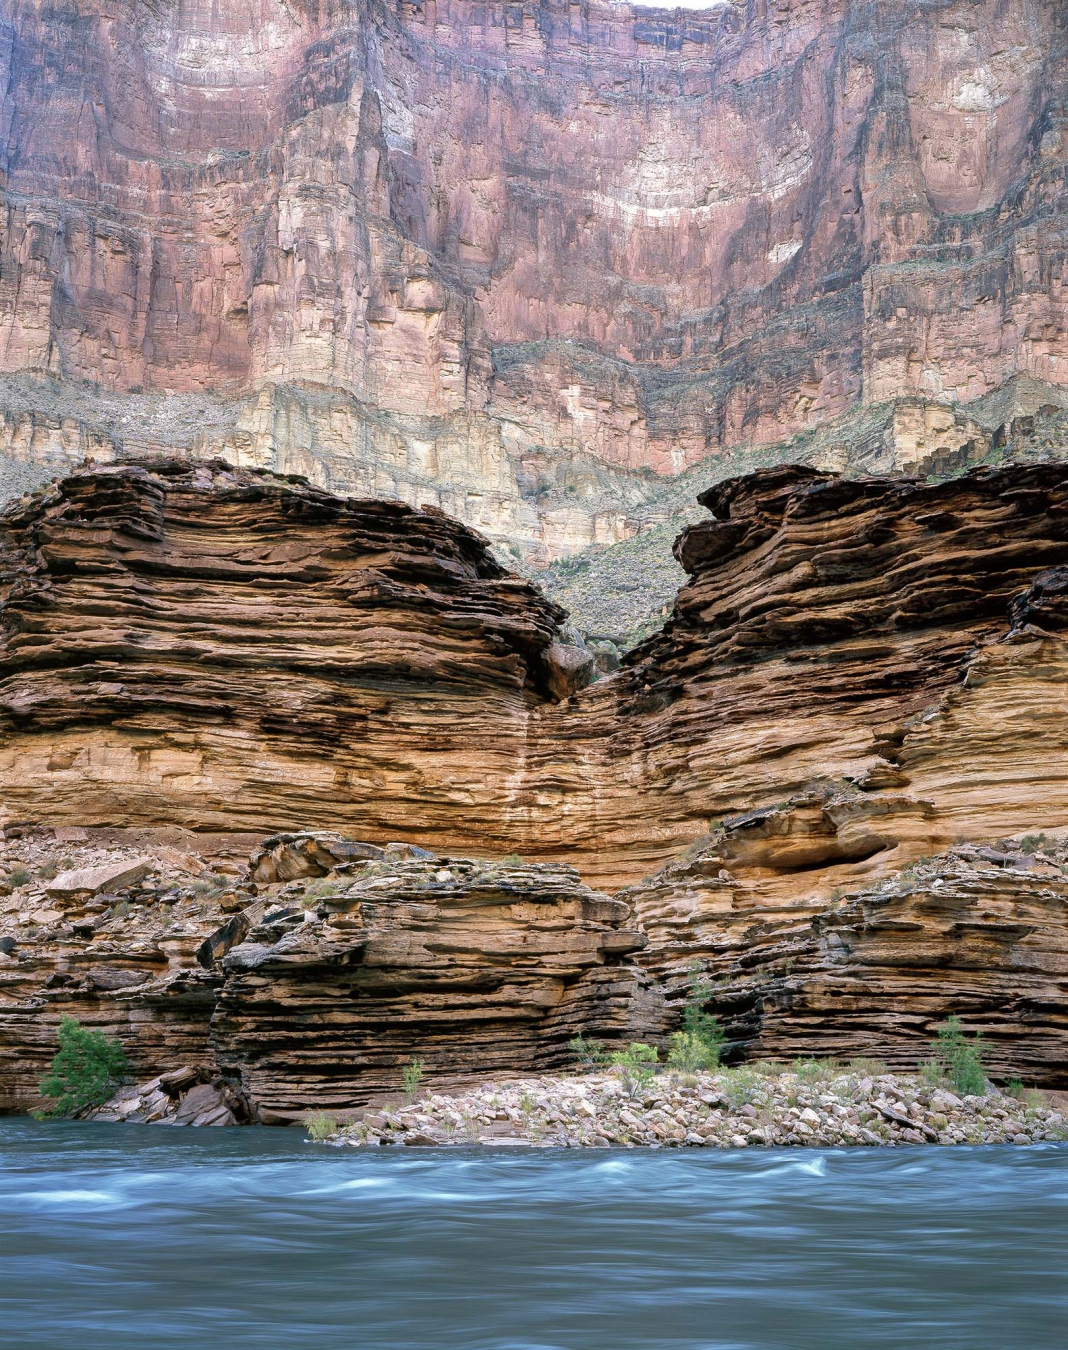 Grand Canyon Inner Canyon Photo Gallery River Trip